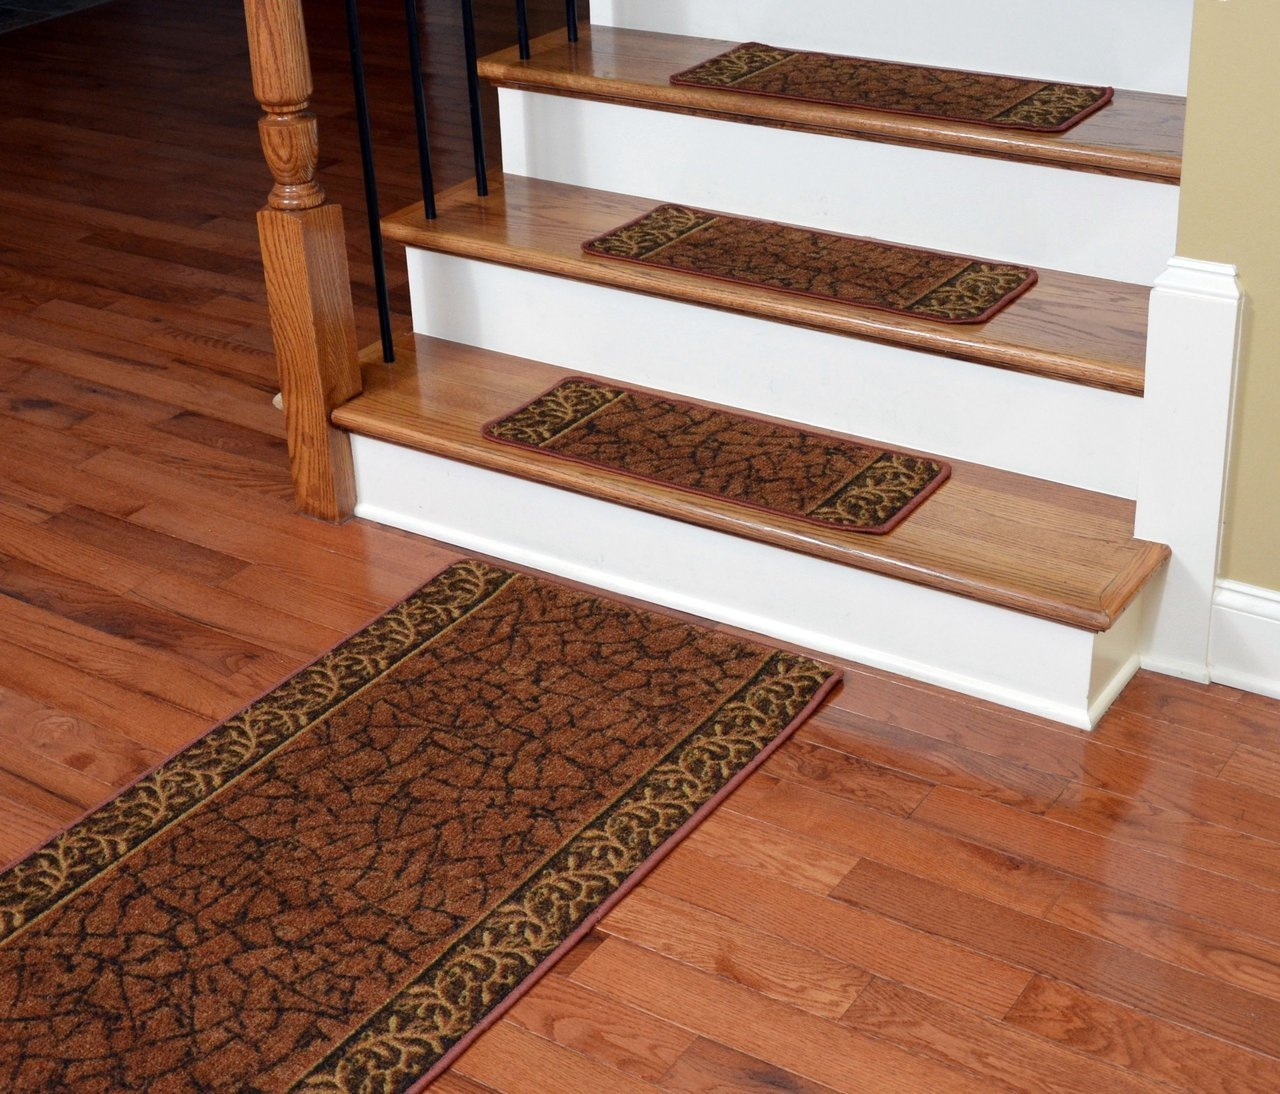 Dean Washable Non Skid Carpet Stair Treads Garden Path Terra With Stair Treads And Matching Rugs (Image 4 of 15)